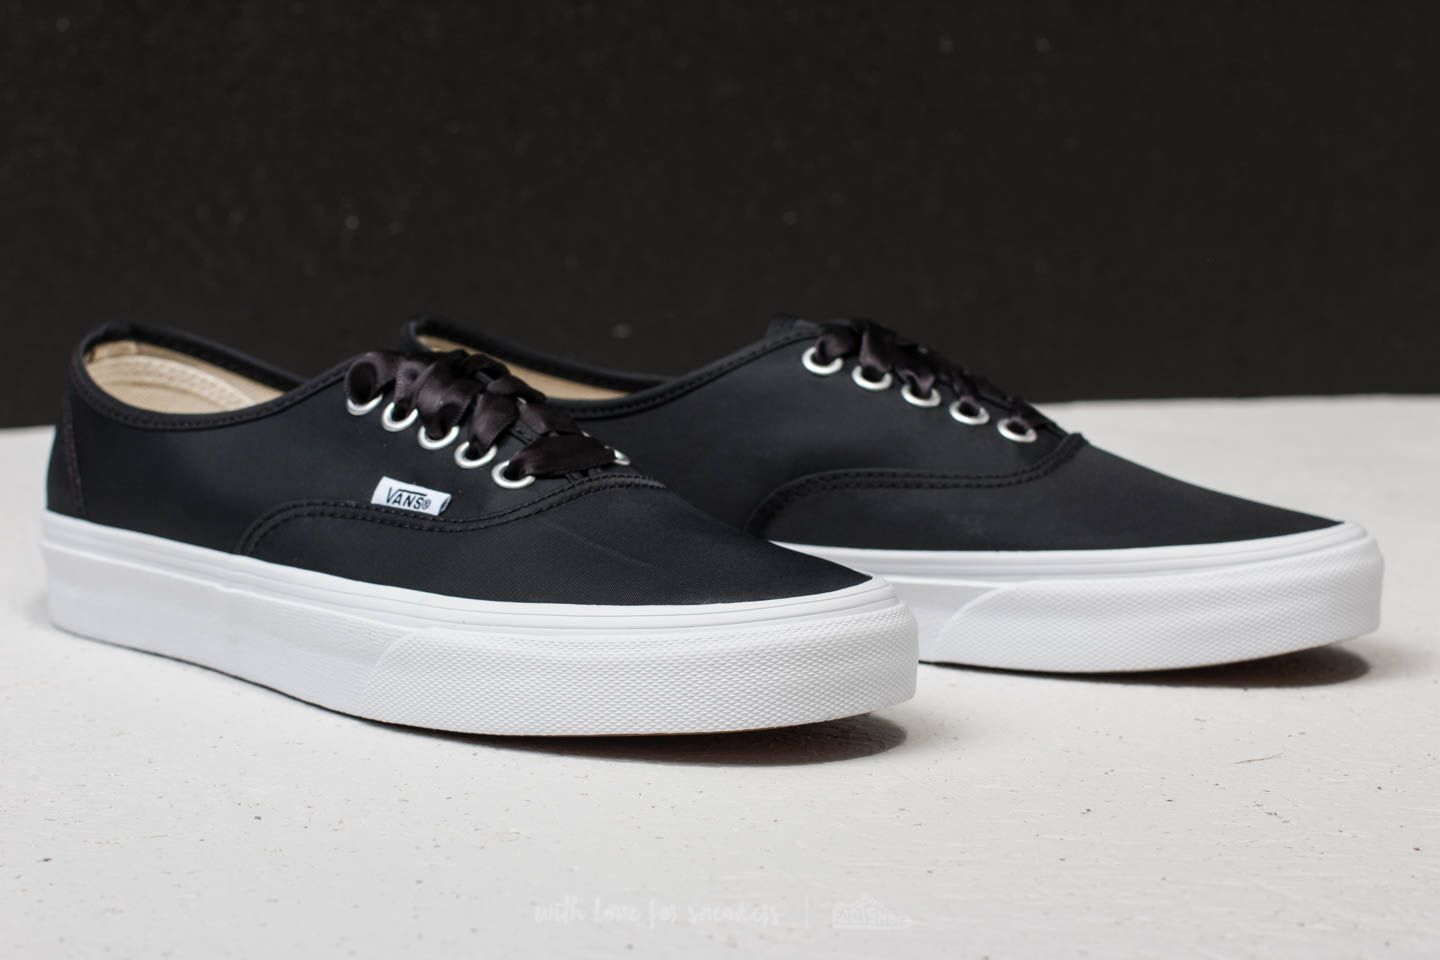 Vans Authentic (Satin Lux) Black True White | Footshop